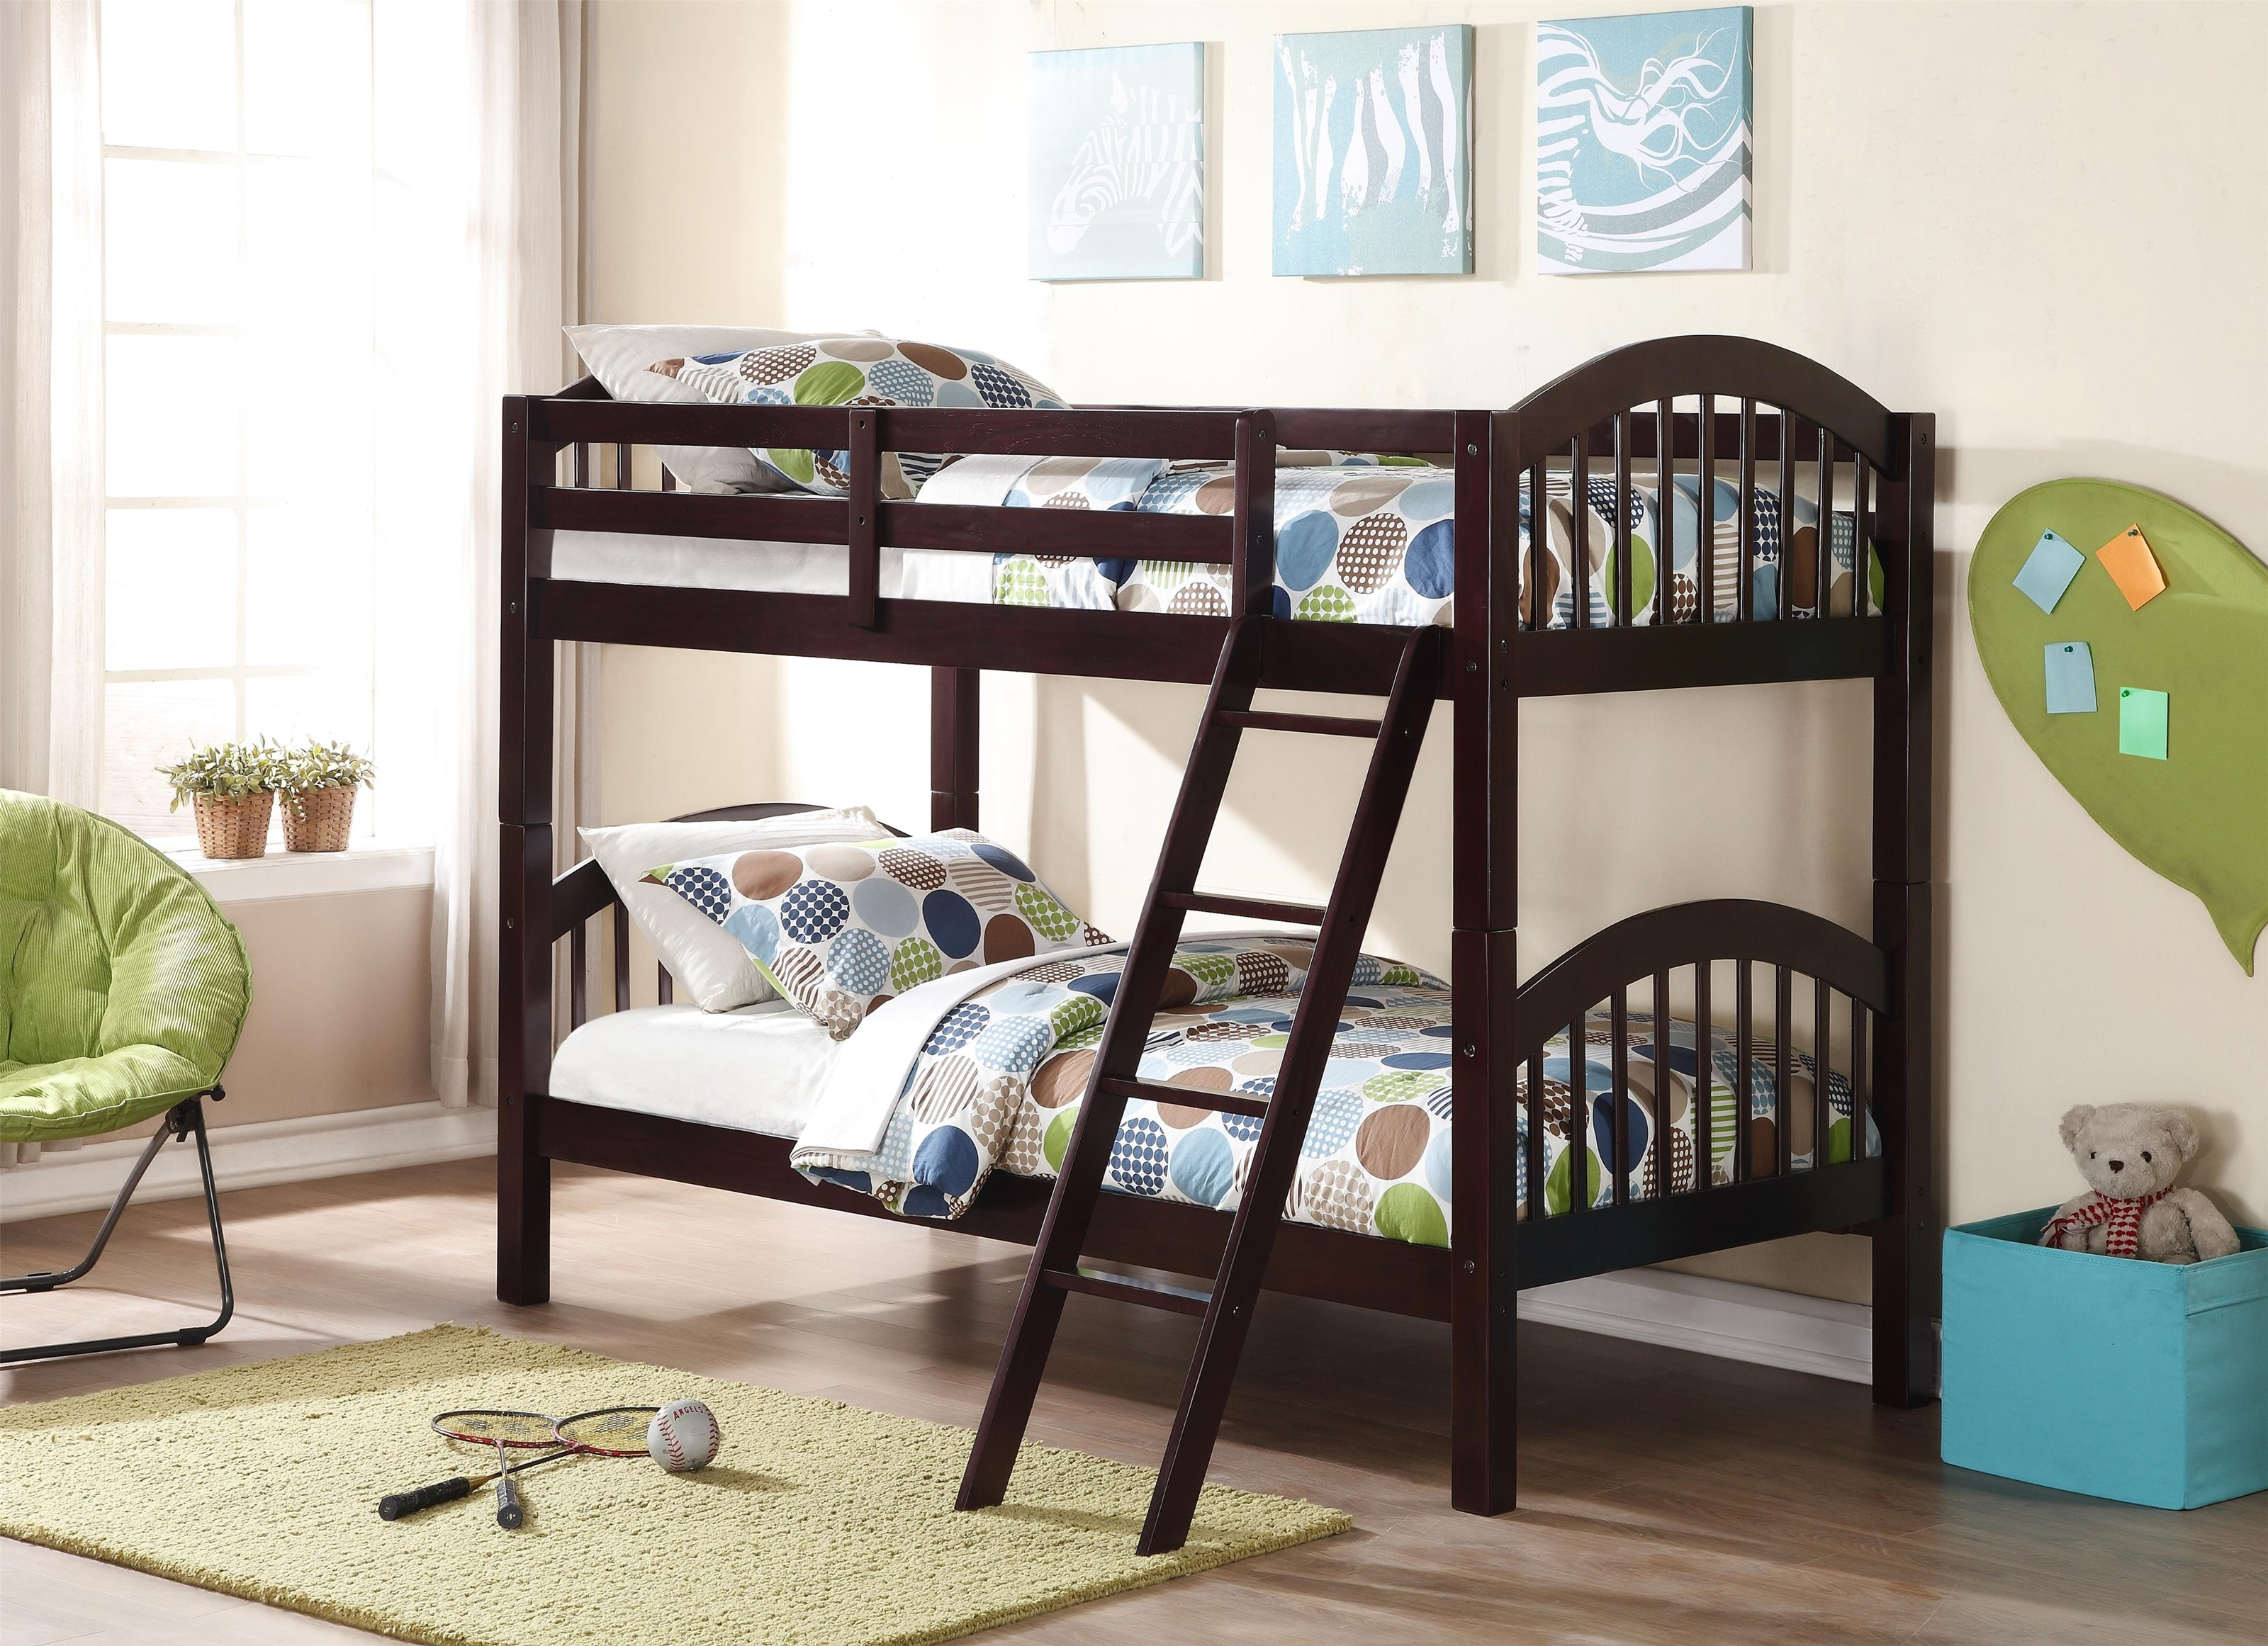 BB1262 Bunkbed by Household Furniture Direct at Household Furniture